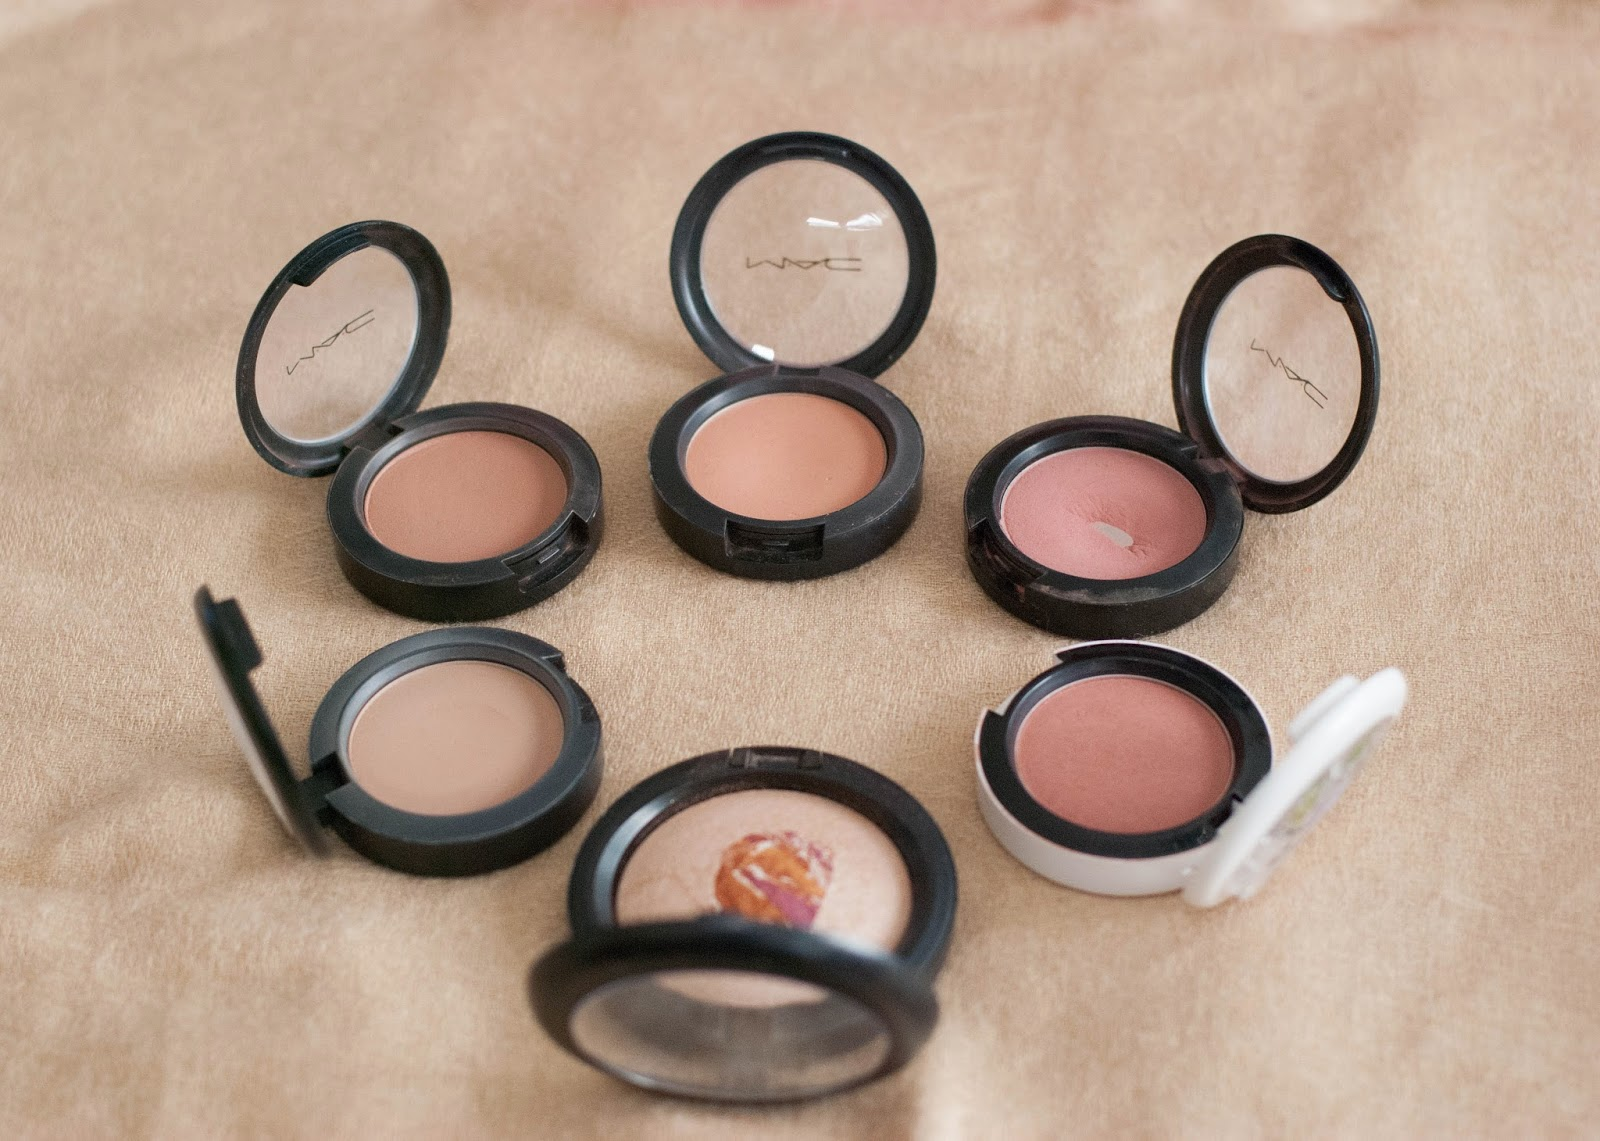 Blush Collection - The neutrals